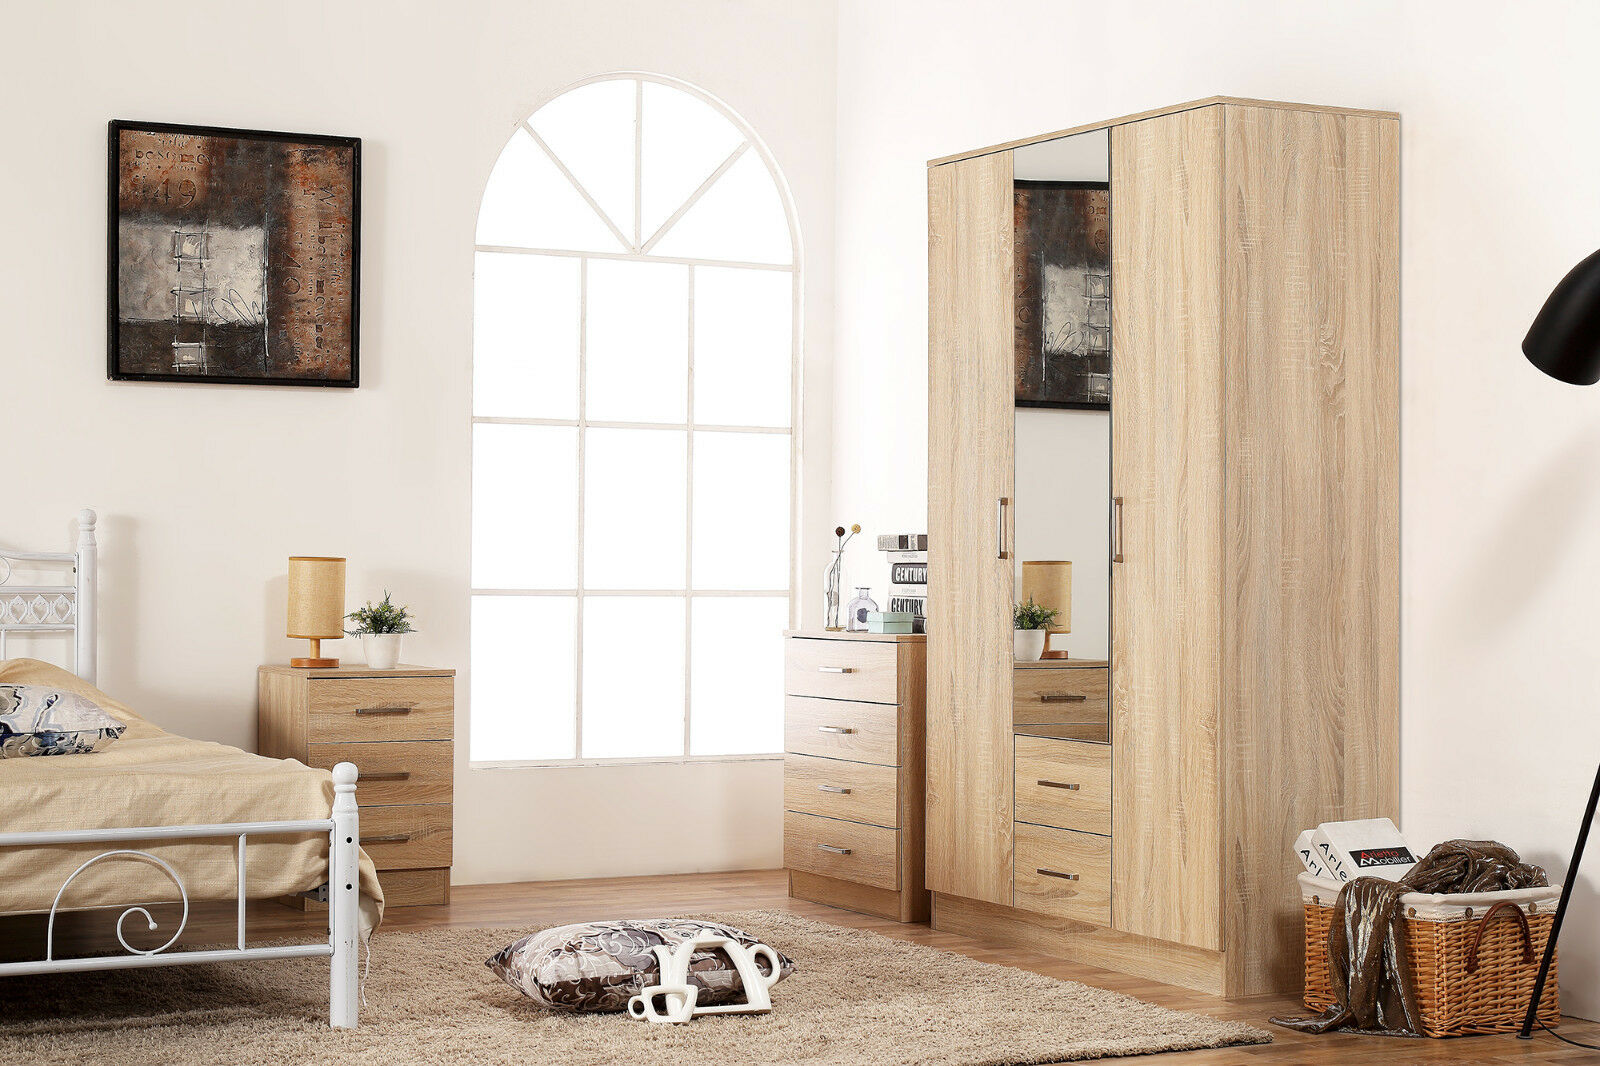 Sonoma Oak Mirrored Bedroom Furniture Set Soft Close Wardrobe Chest Bedside 5060624380068 Ebay